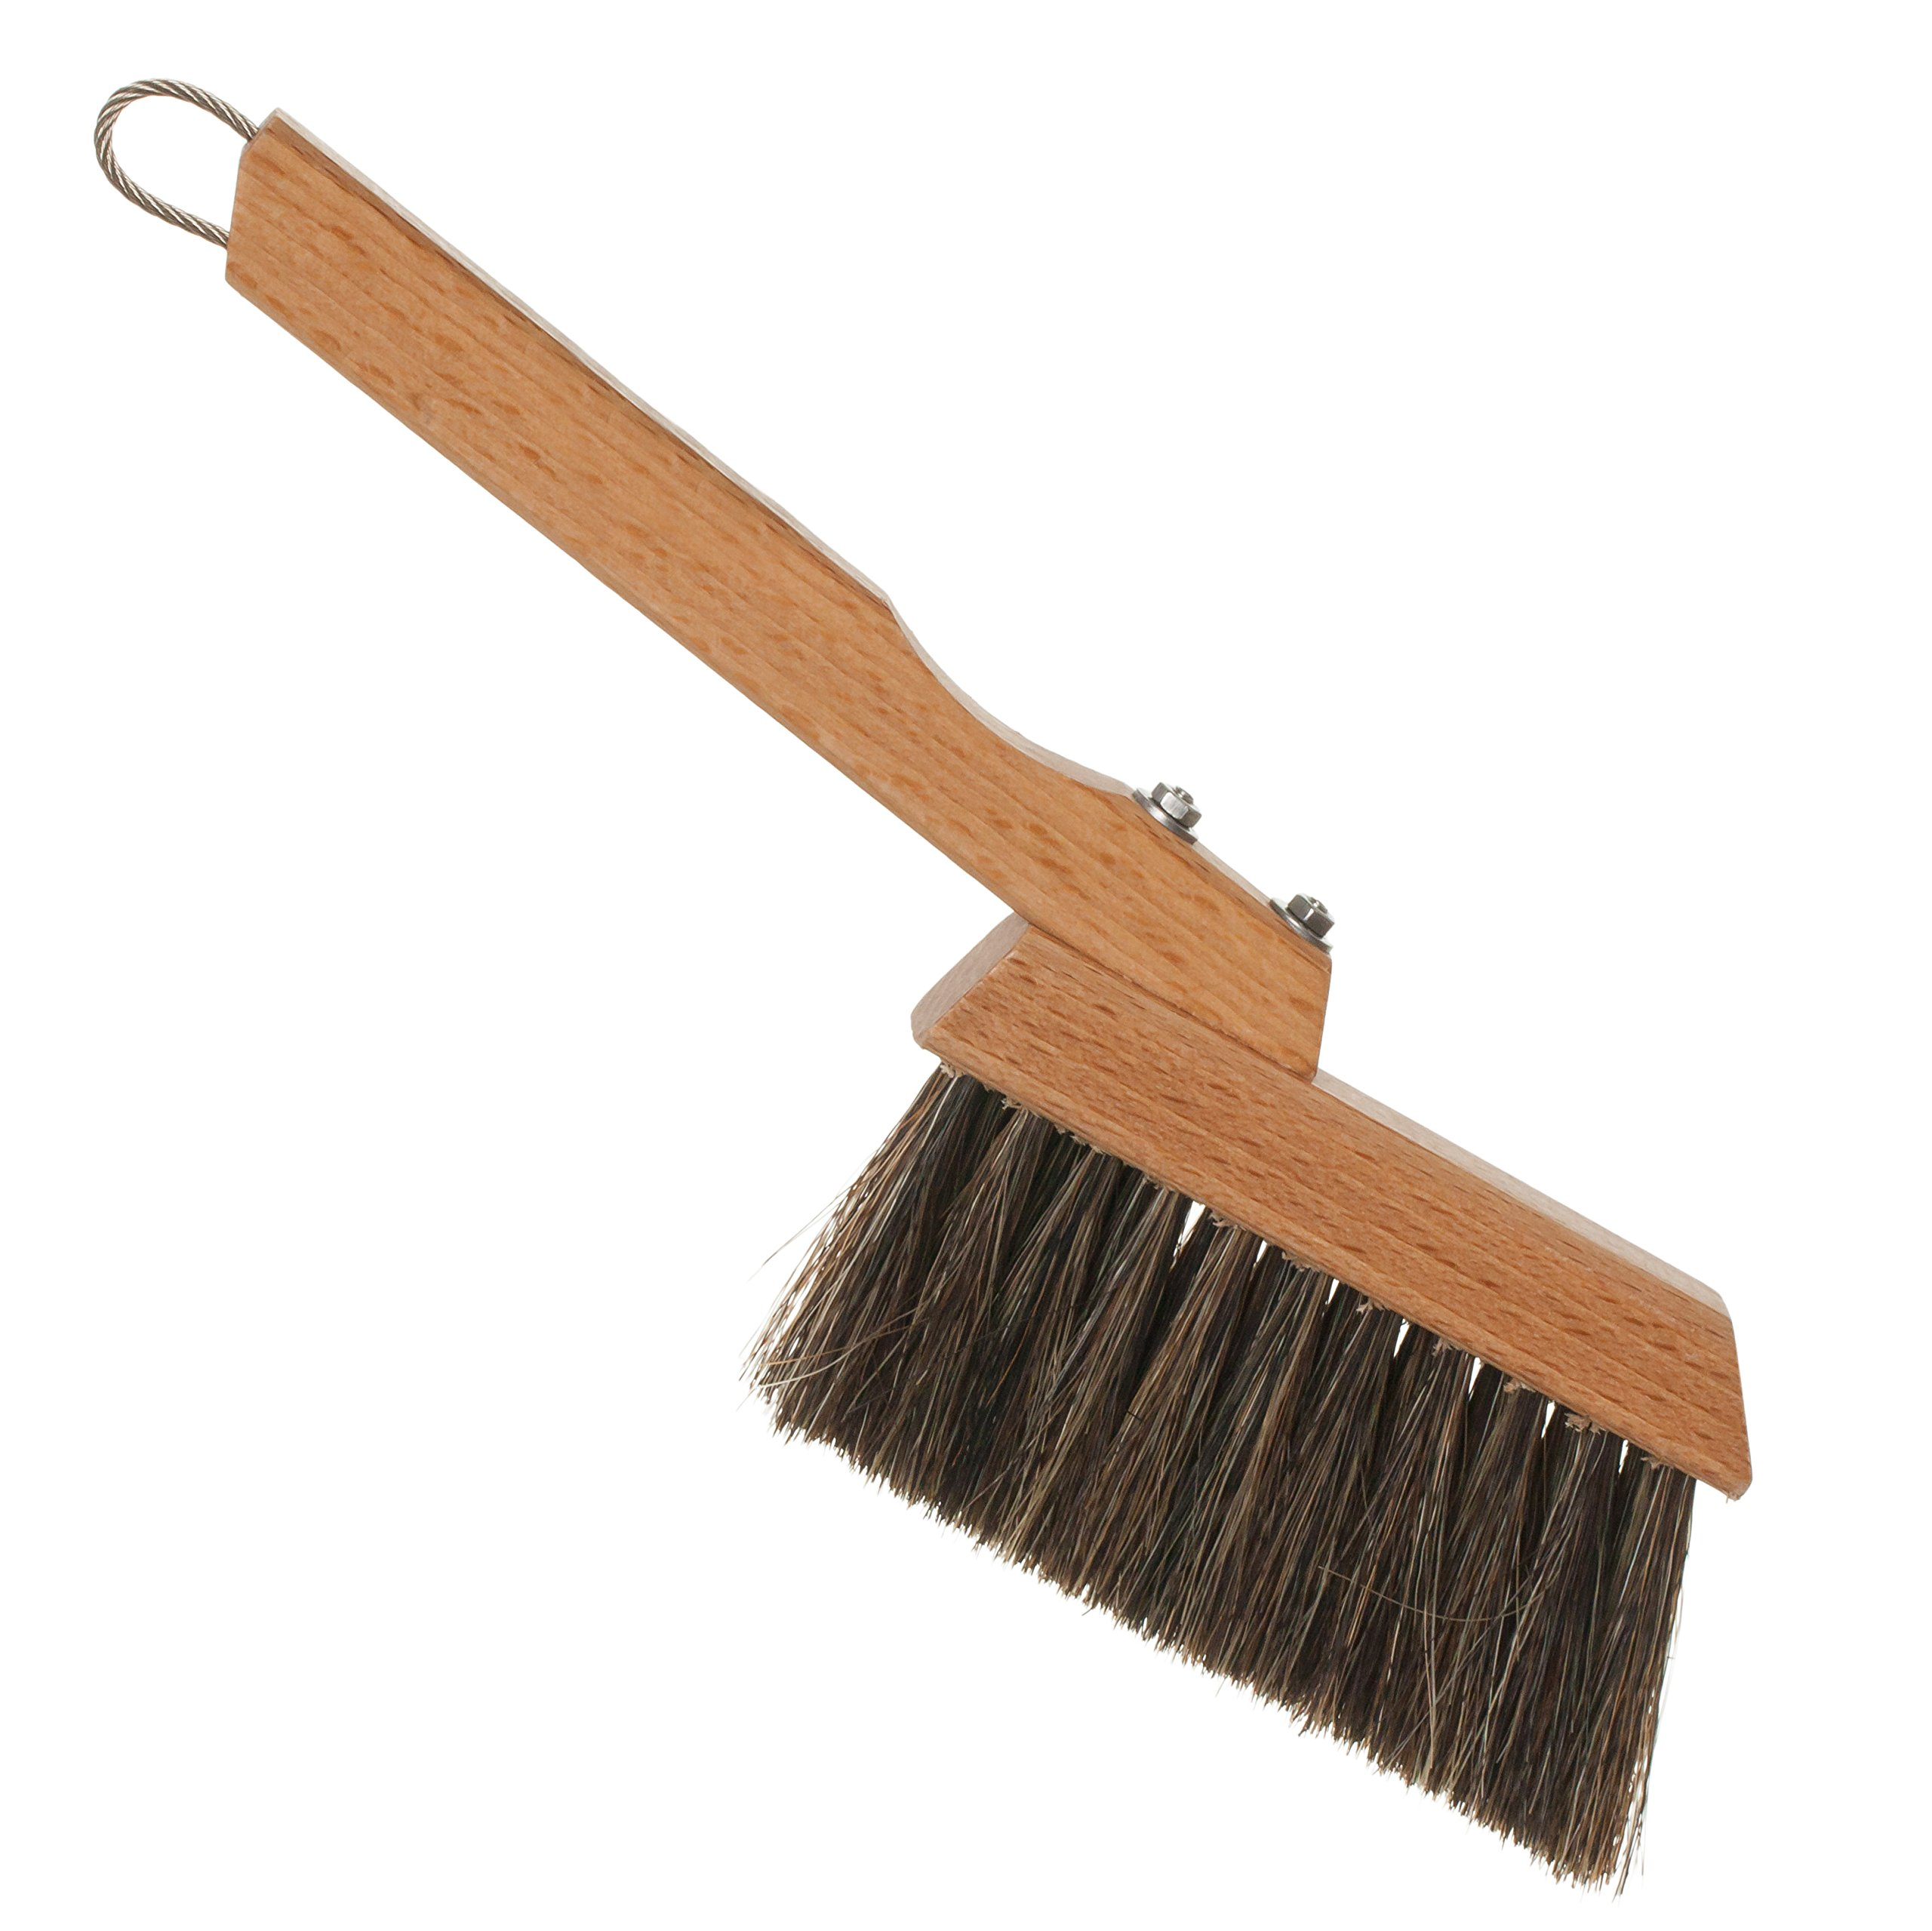 Redecker Horsehair Espresso/Coffee Brush with Oiled Beechwood Handle, 9-Inches